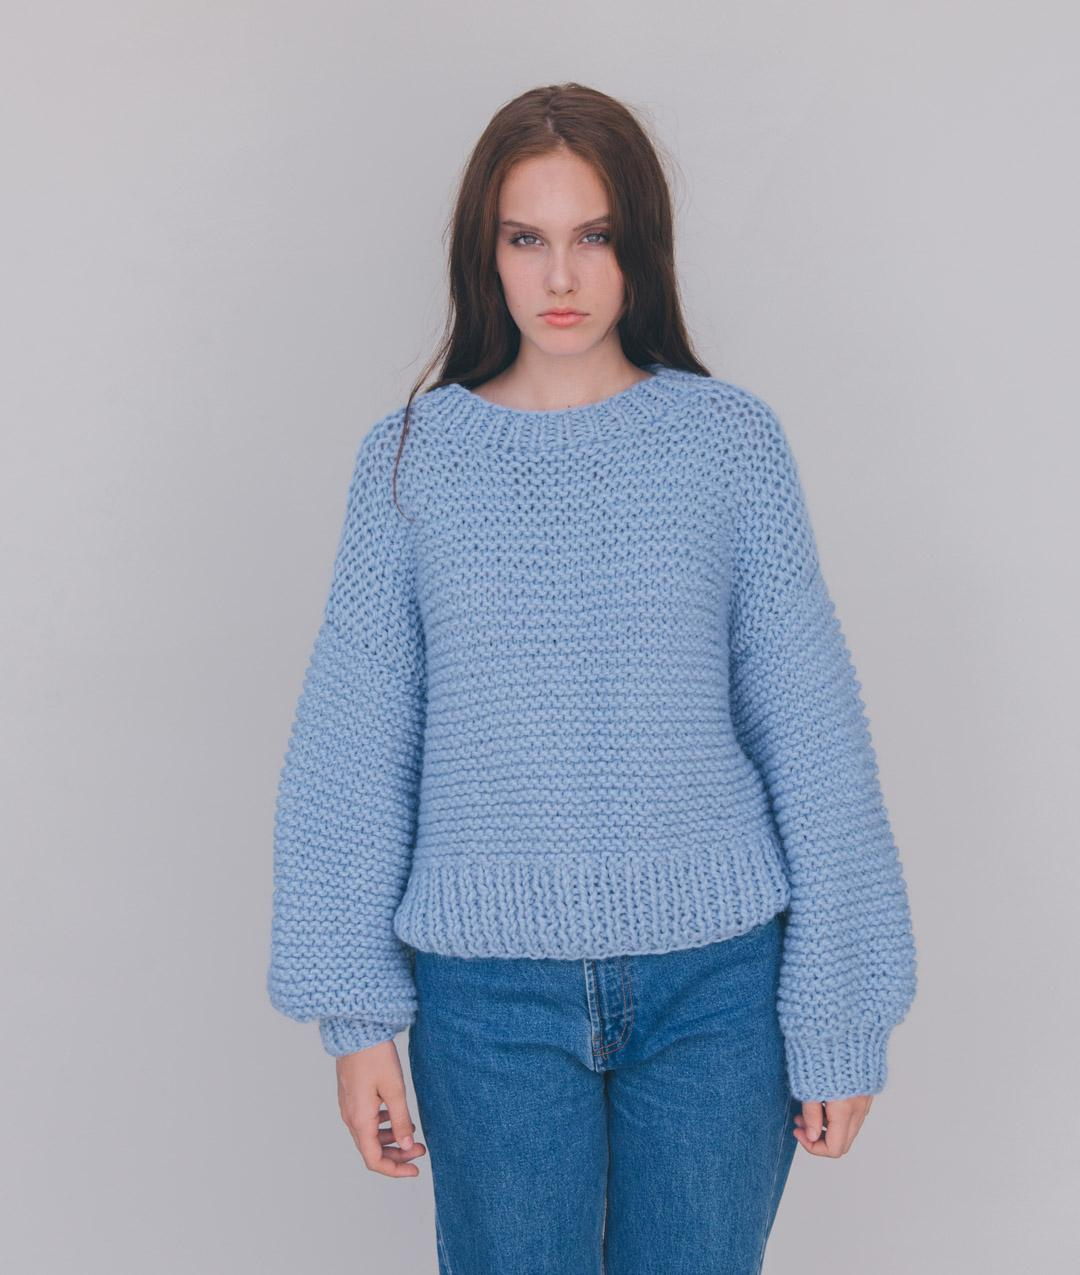 Sweaters and Tops -  - SERENITY PULL - 1